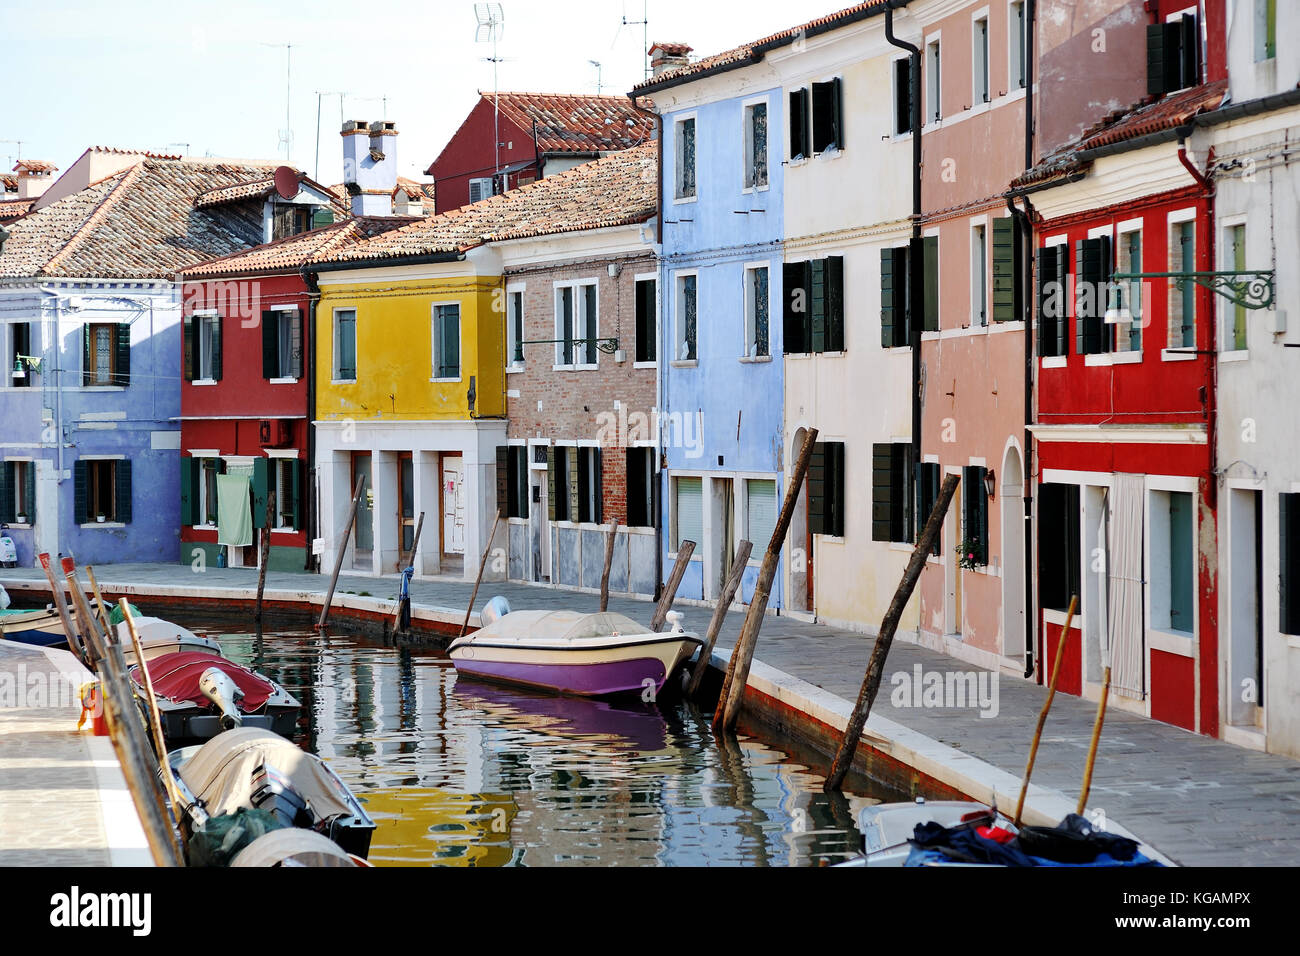 Venice, Burano island, Italy - view of canal and colorful buildings - Stock Image